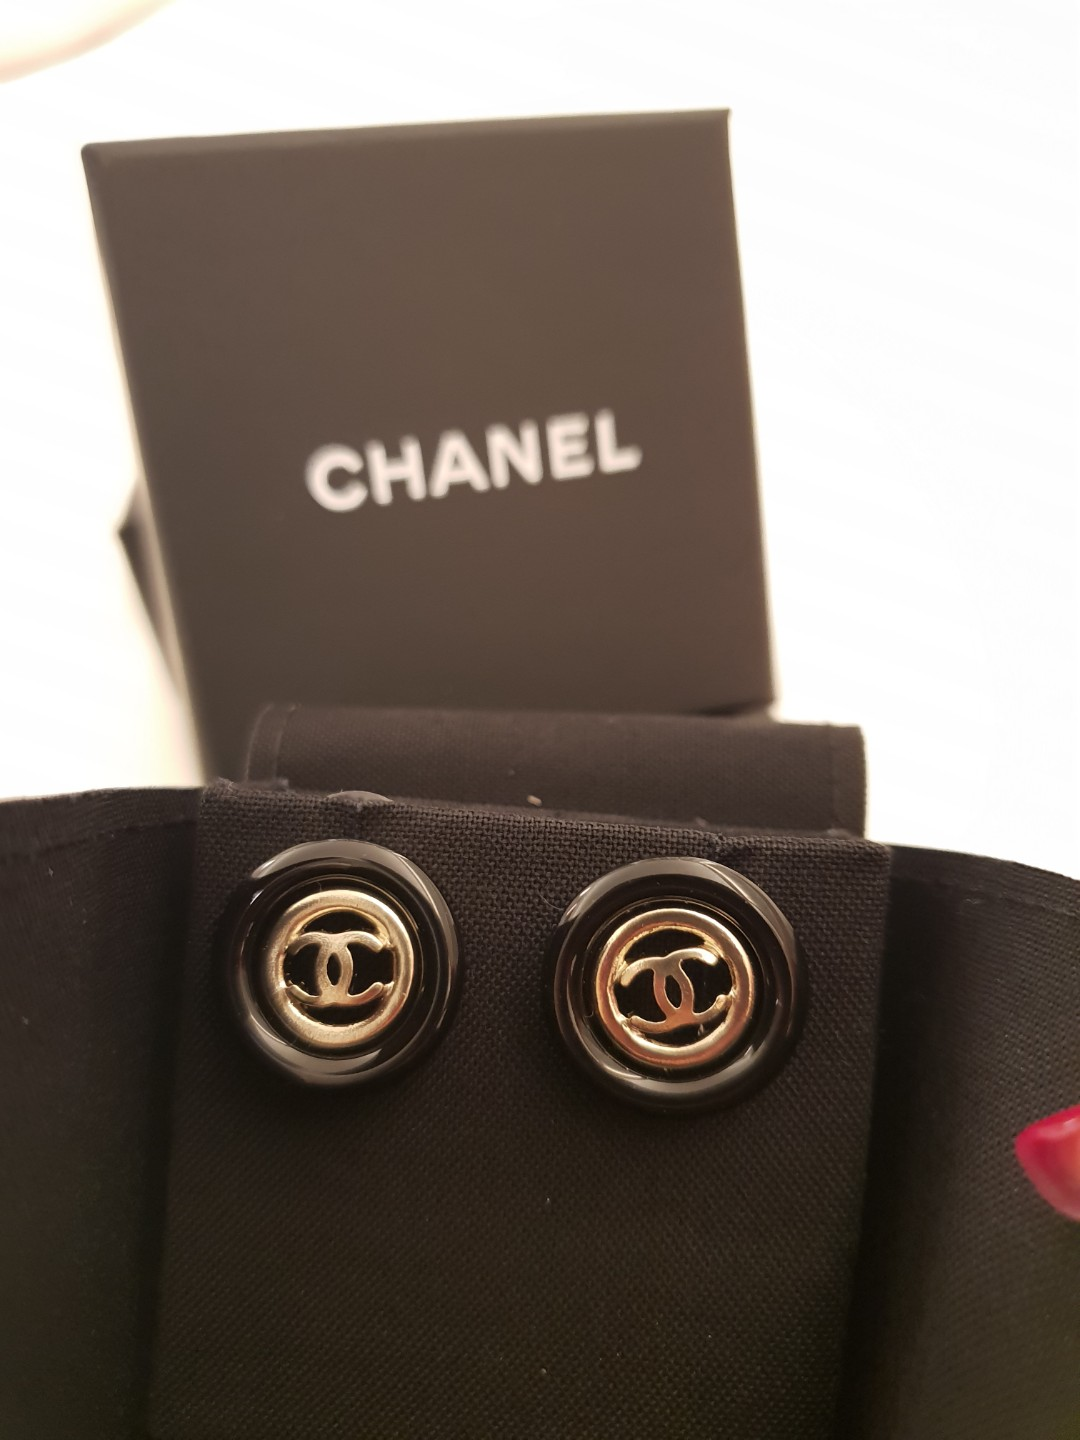 82a821c9b1dca AUTHENTIC Chanel Gold Double C Earrings